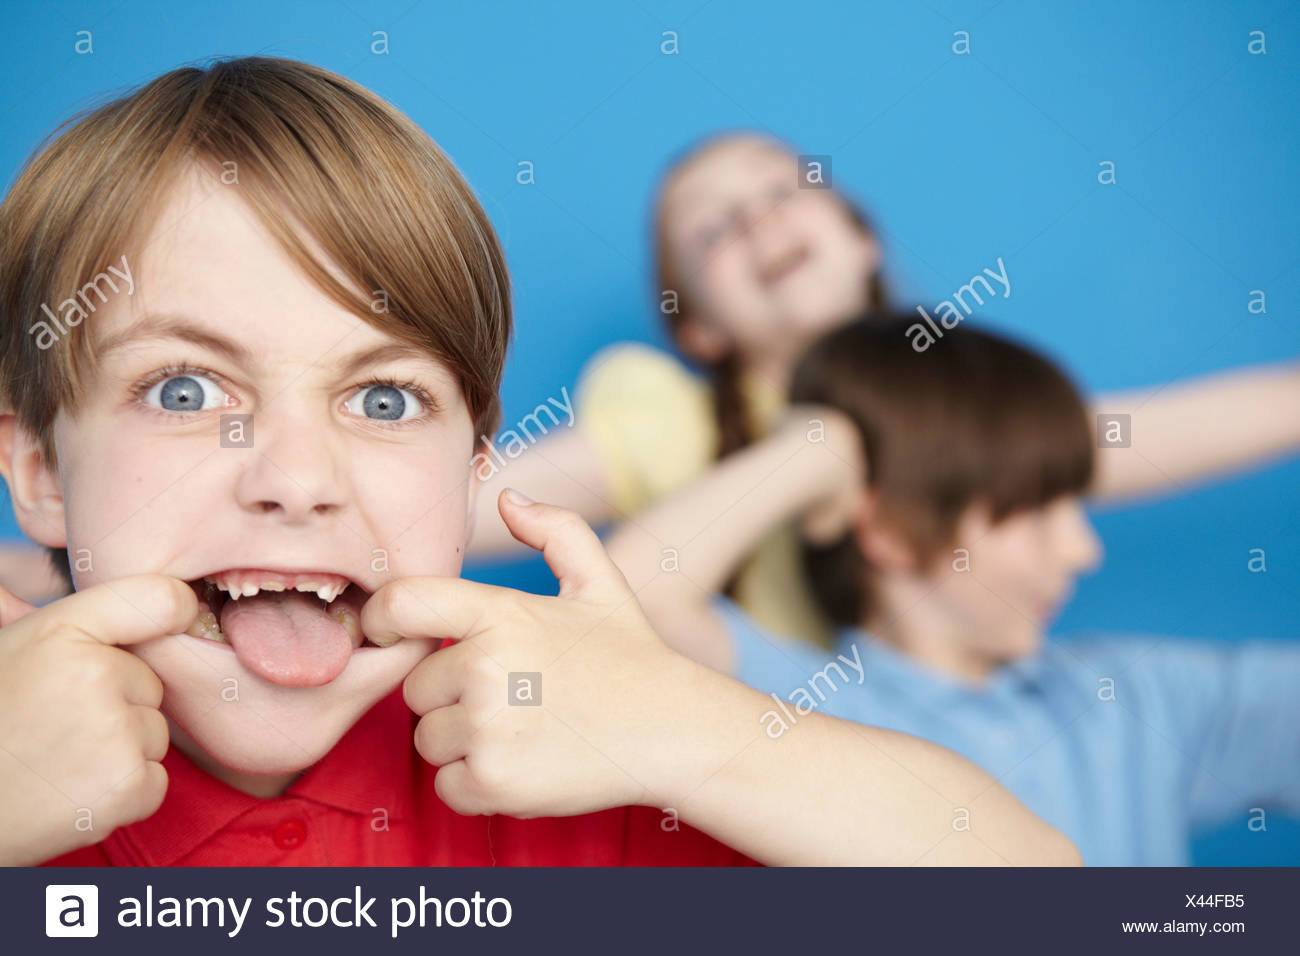 Portrait of boy sticking out tongue, blue background - Stock Image